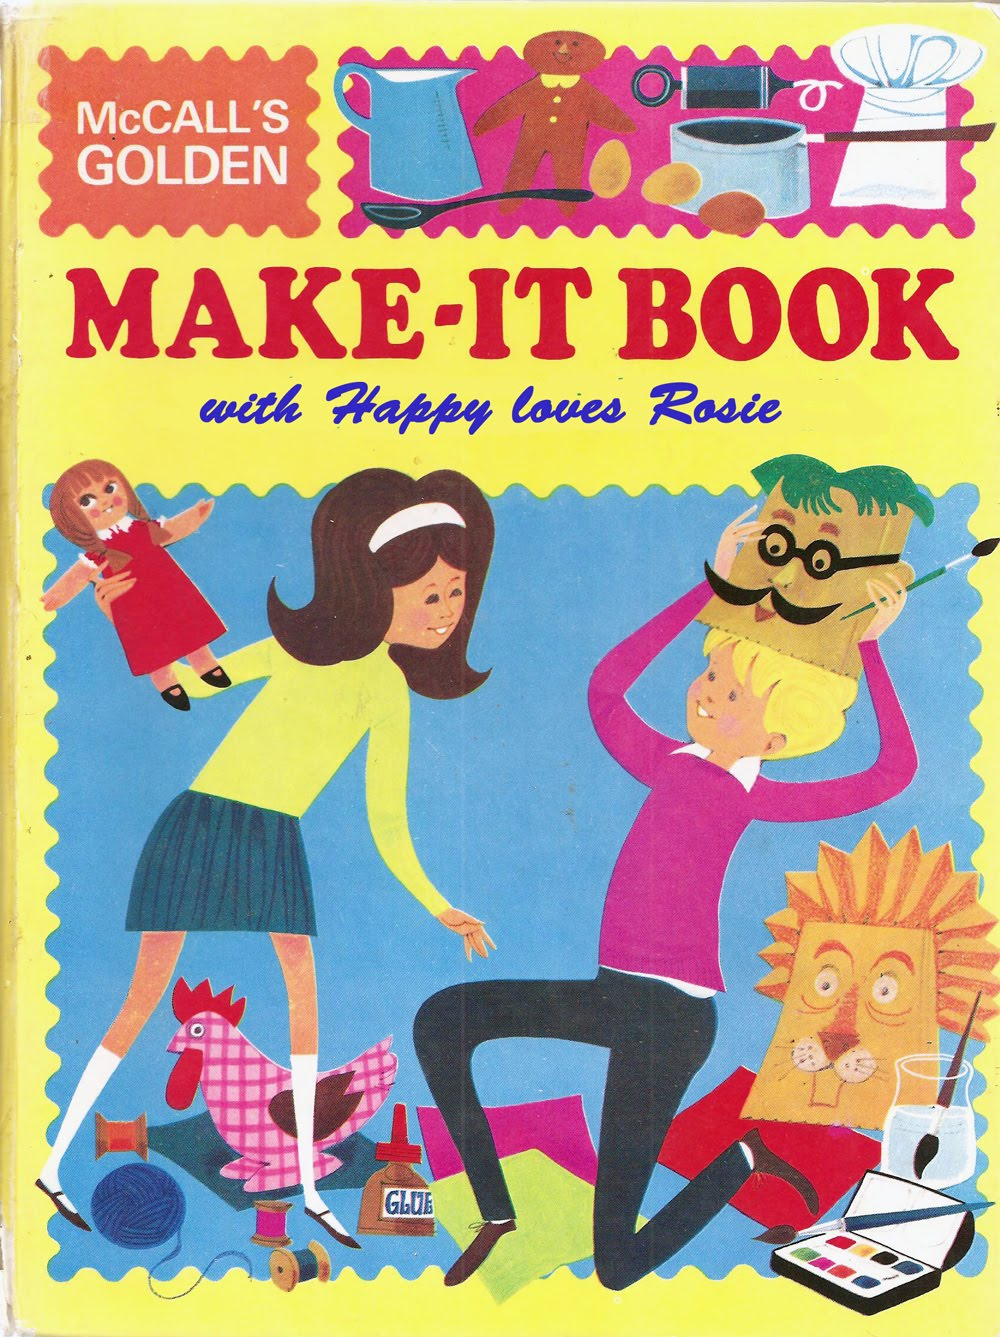 McCall's Golden Make it Book